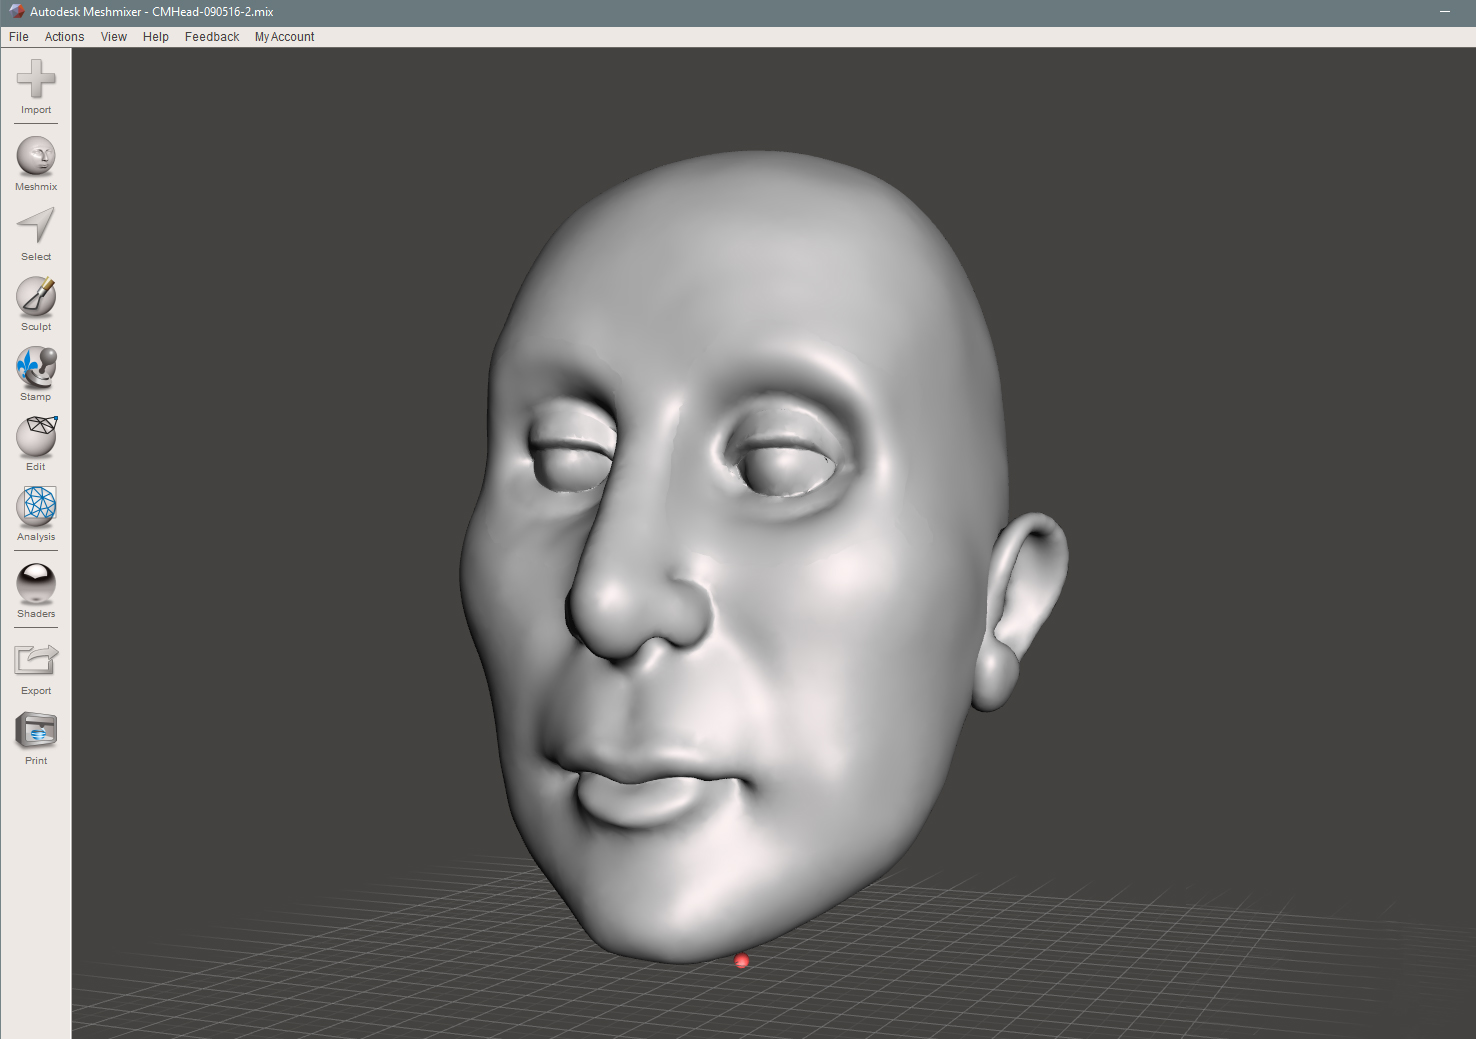 Eyes and ears have been fixed, smooth face imperfections and refine mesh